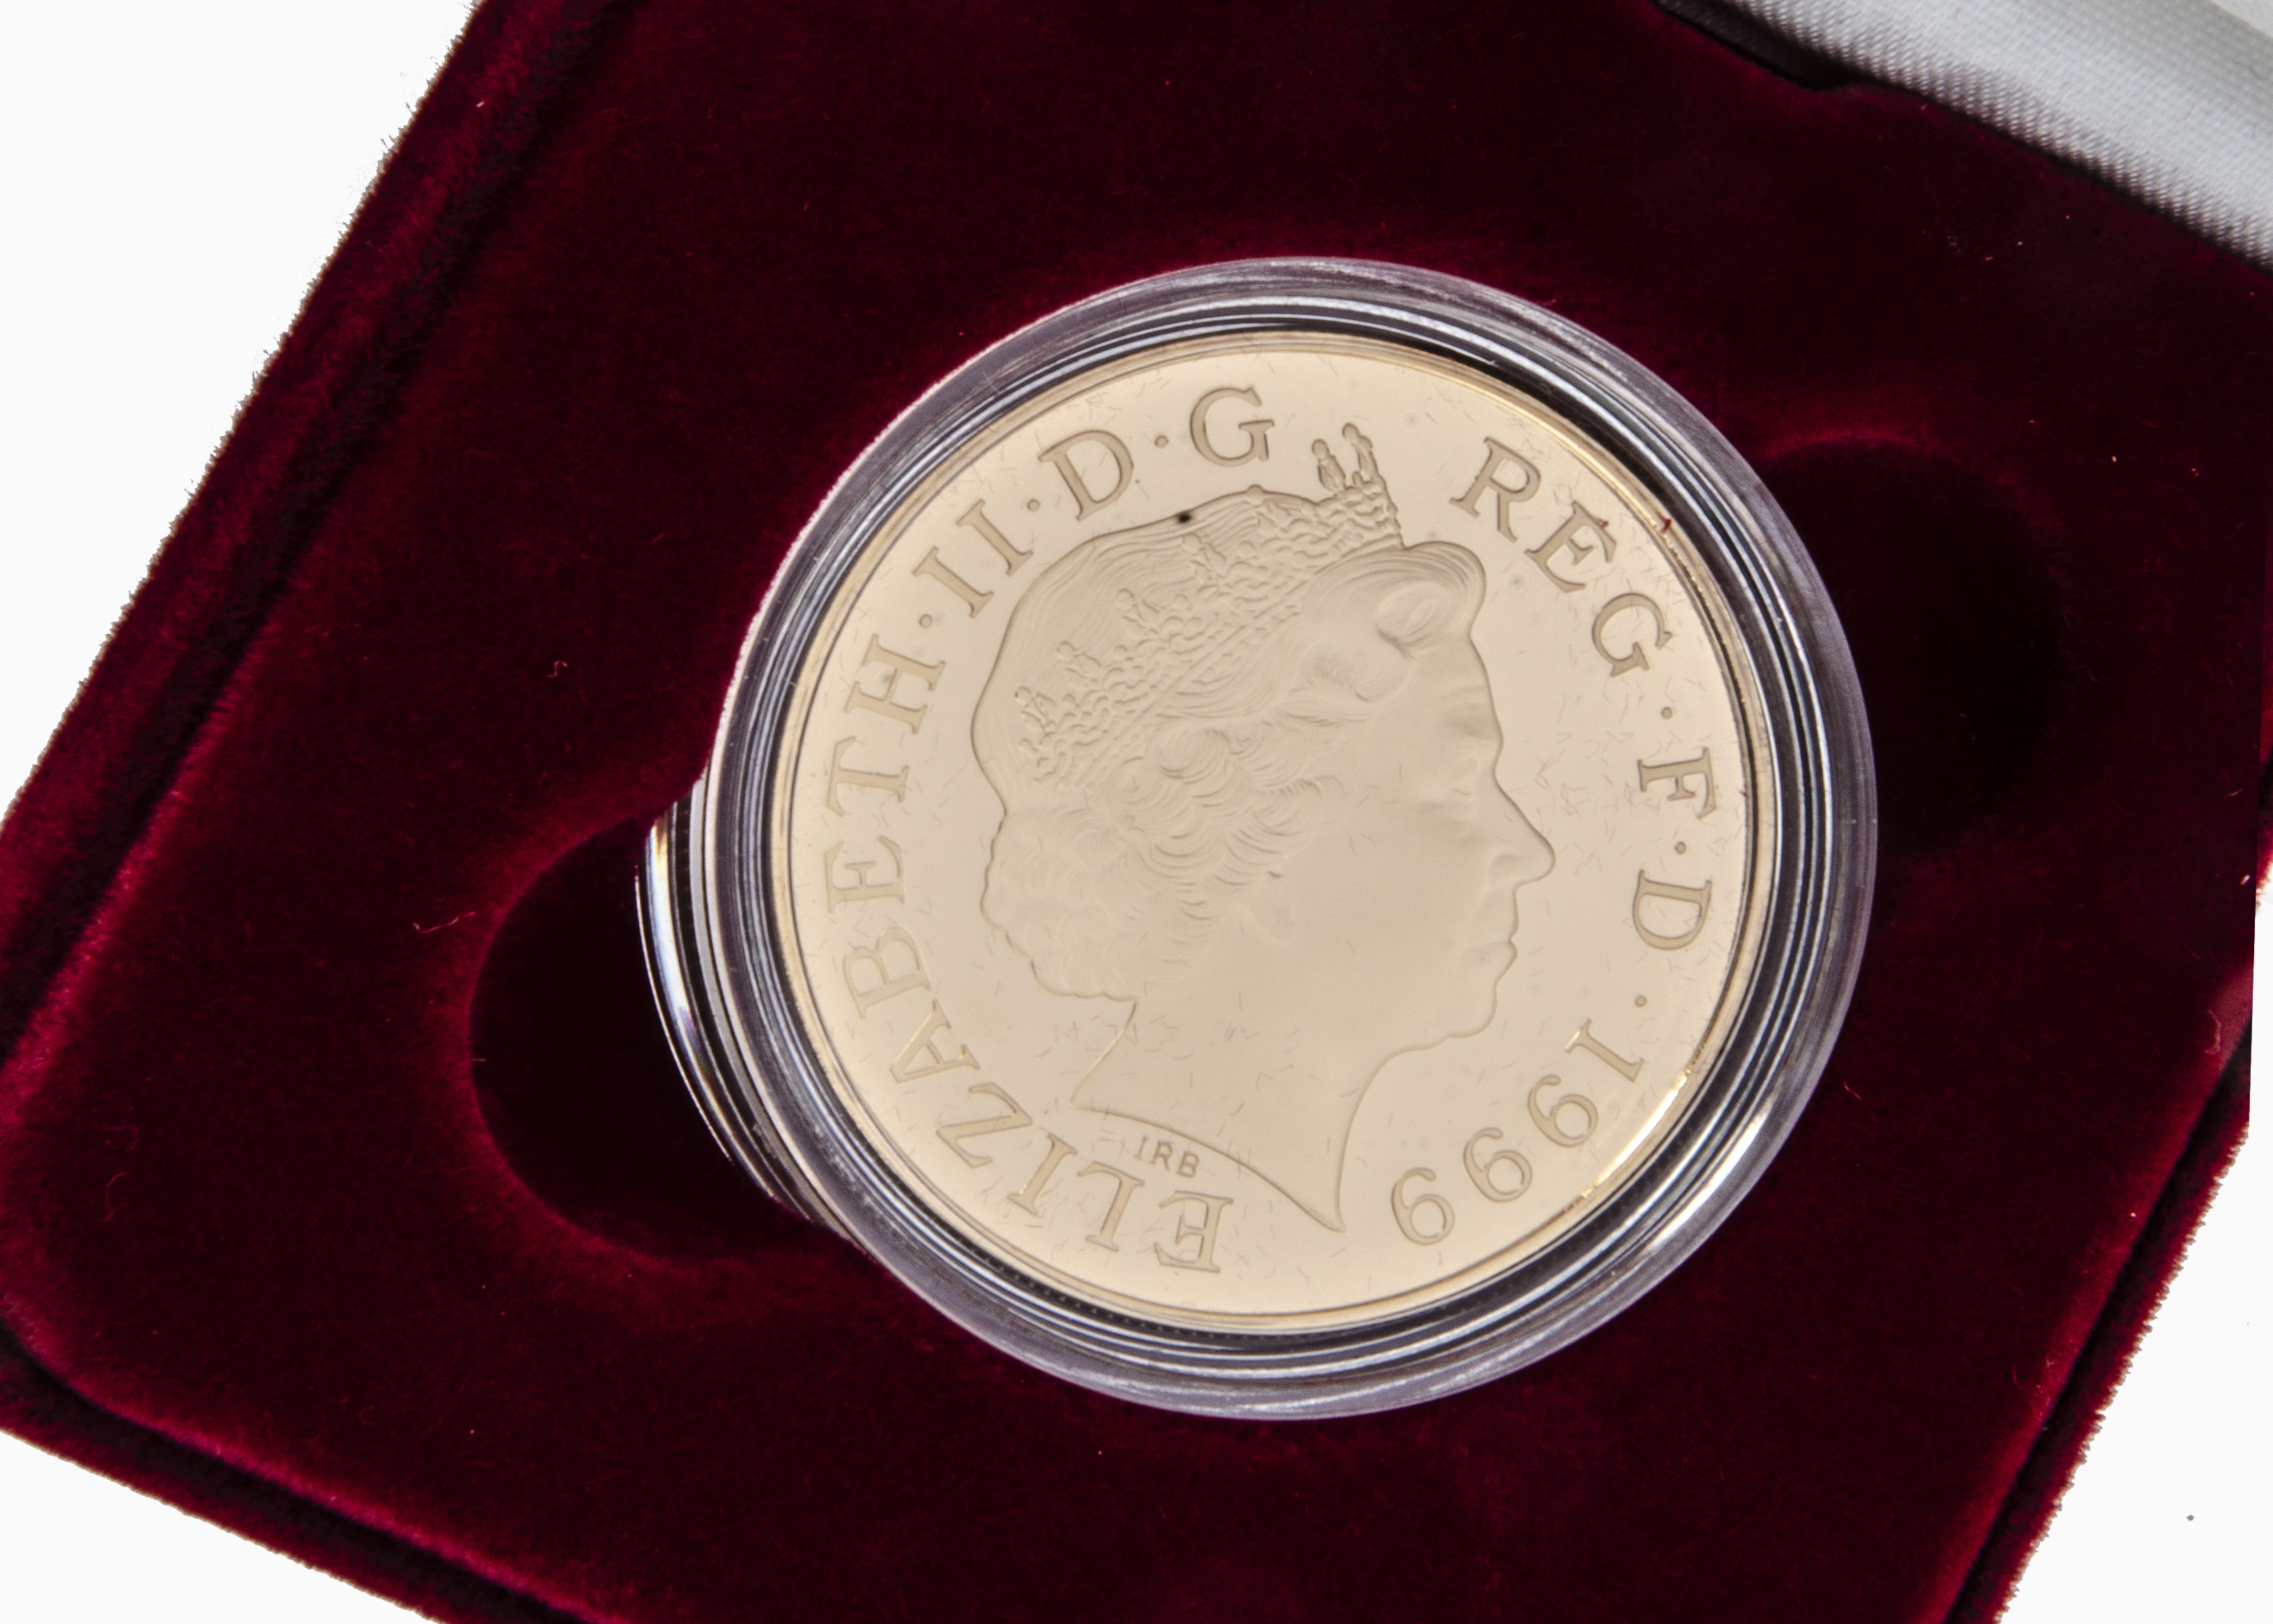 A modern Royal Mint Diana Princess of Wales Gold Proof Memorial Coin, 1999, in box with certificate, - Image 2 of 2